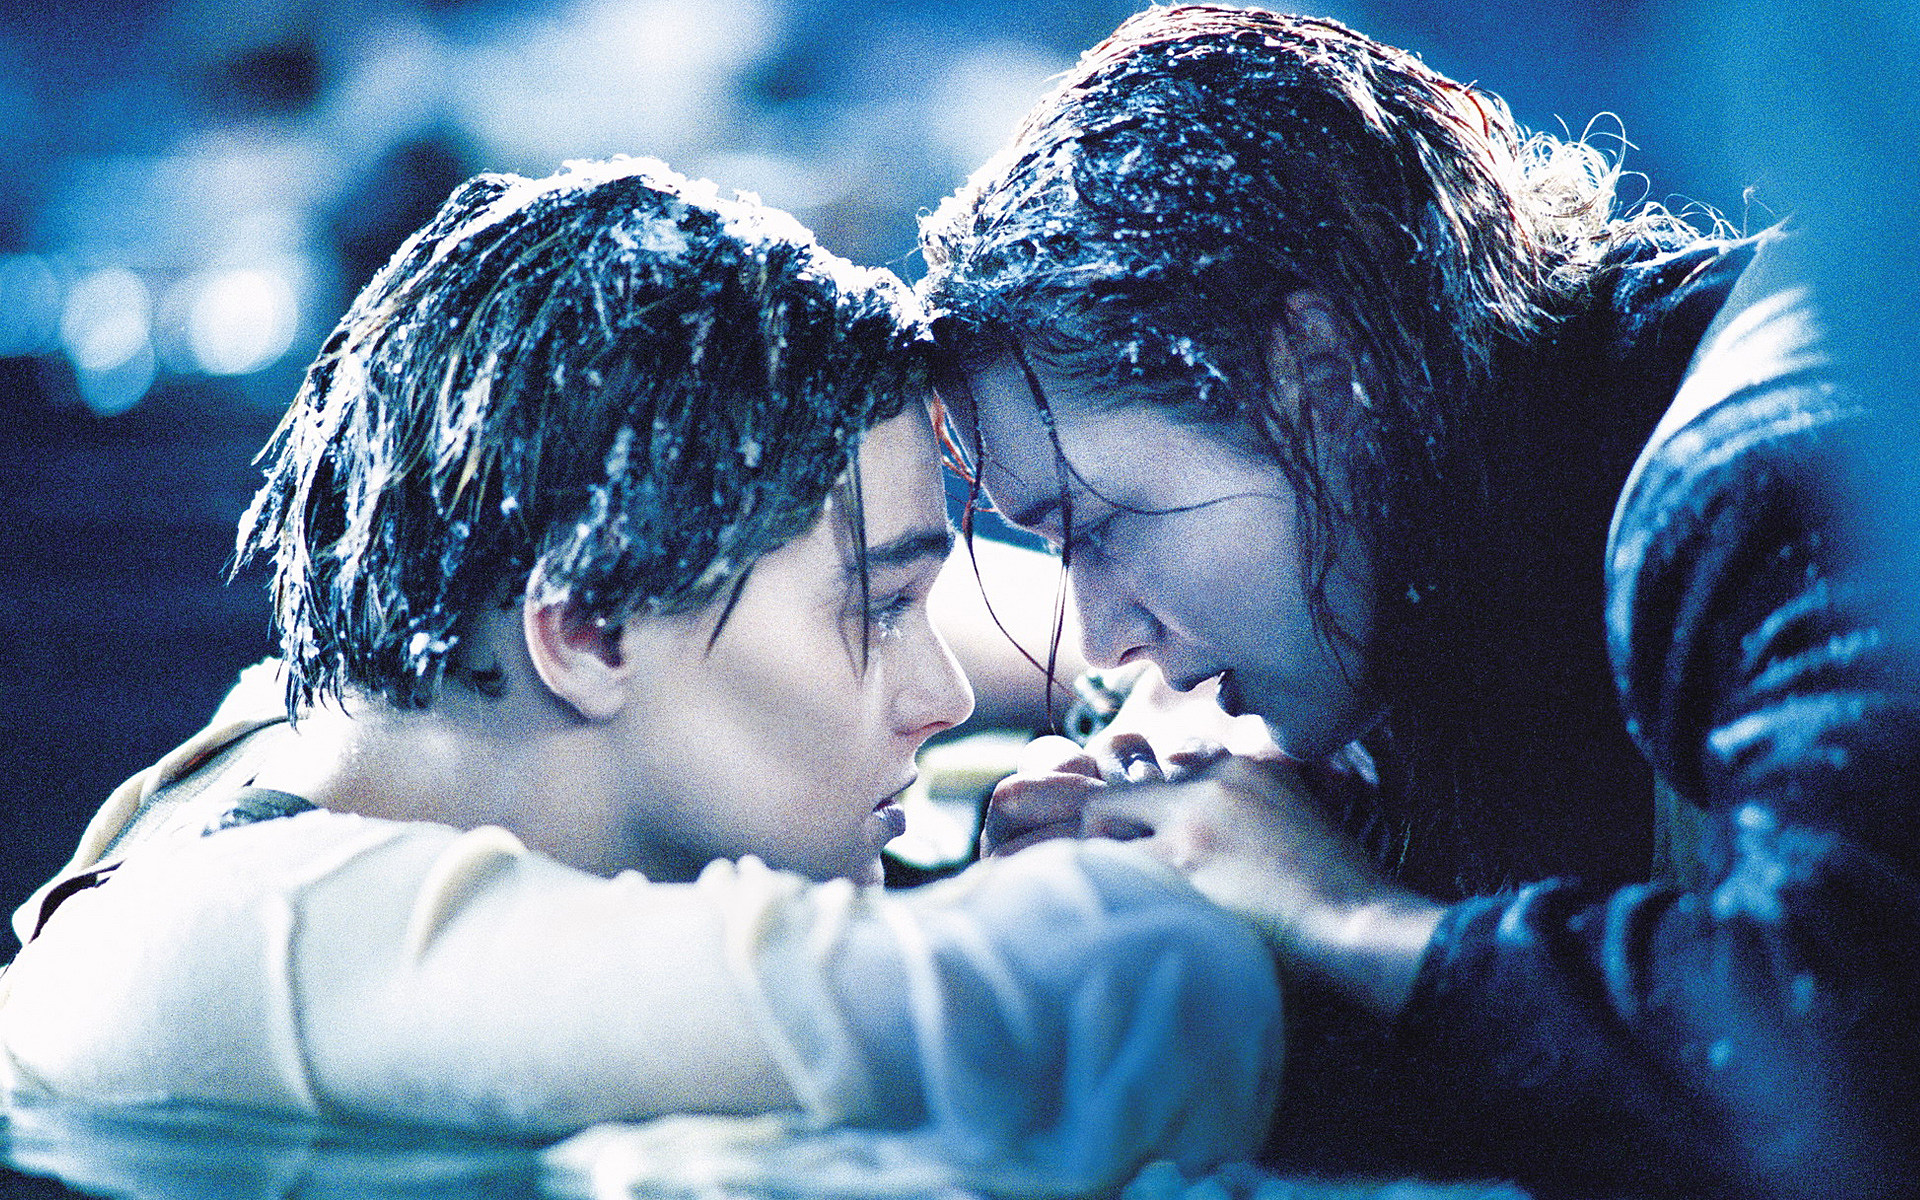 The 25 Most Romantic Movies of the Last 25 Years